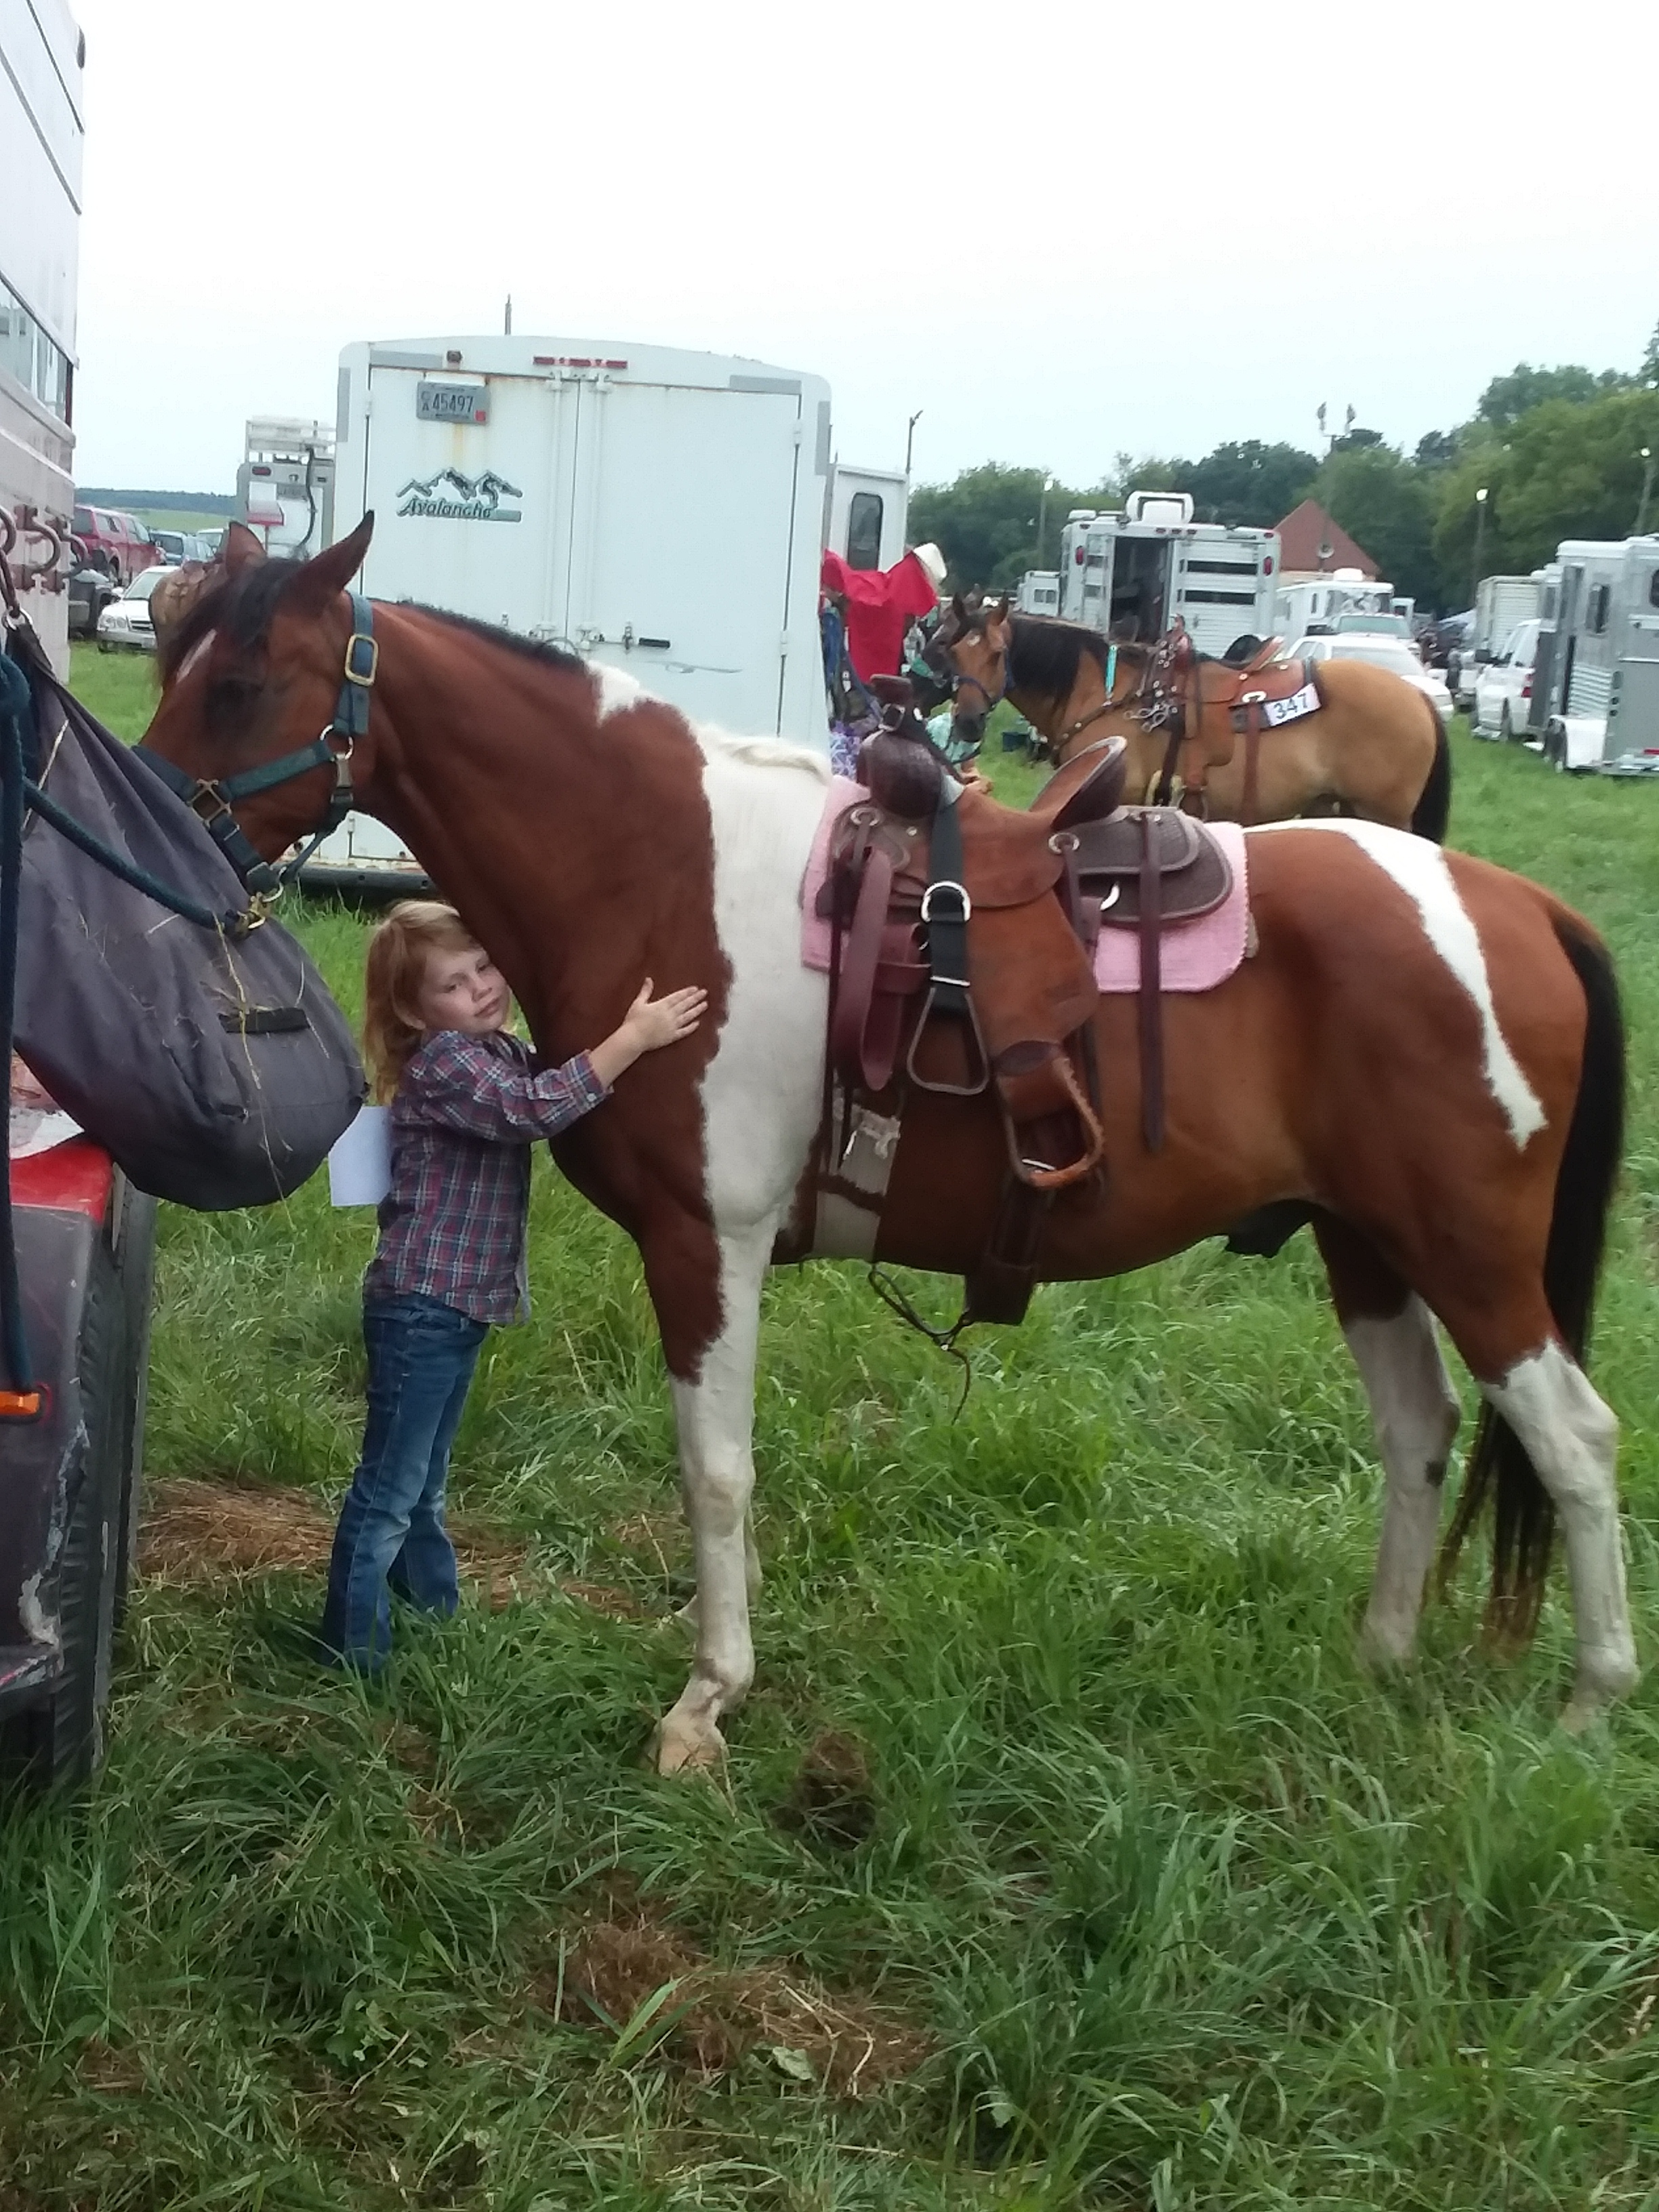 This is my daughter and her pony, Jack. He's not a Shetland Pony. But we love him anyway.